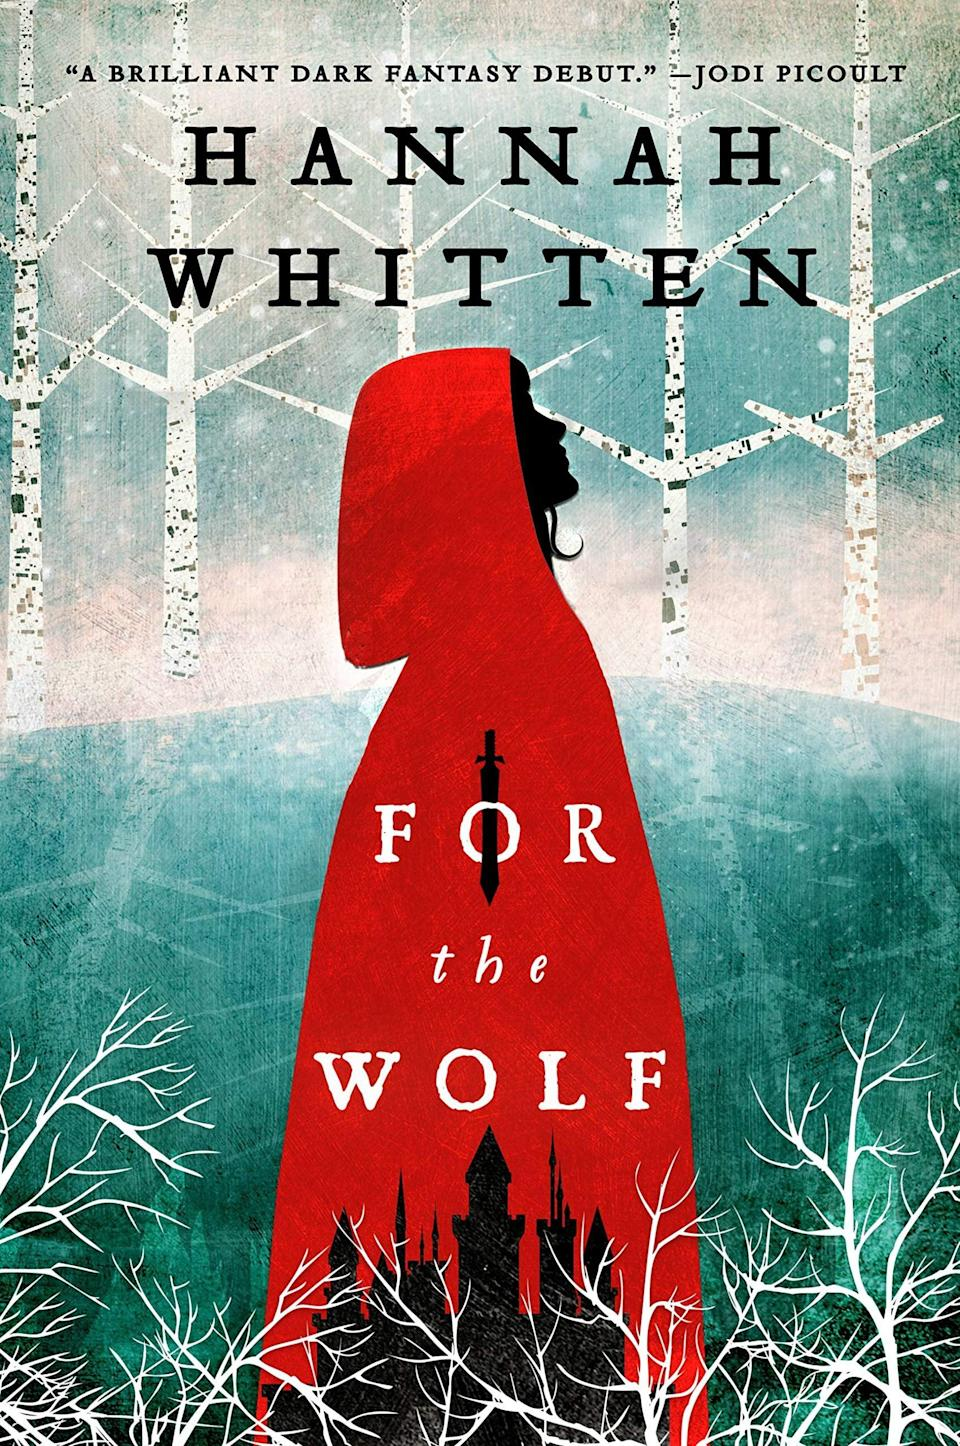 <p>Hannah Whitten weaves a wonderfully eerie dark fantasy tale in <span><strong>For the Wolf</strong></span>. As the first second daughter born in centuries, Red's only purpose in life is to be sacrificed to the Wolf in exchange for him freeing her community's gods. But something strange happens when she's left in the Wilderwood: Red discovers the Wolf is just a normal man, and it's up to her to save the world. </p> <p><em>Out June 1</em></p>